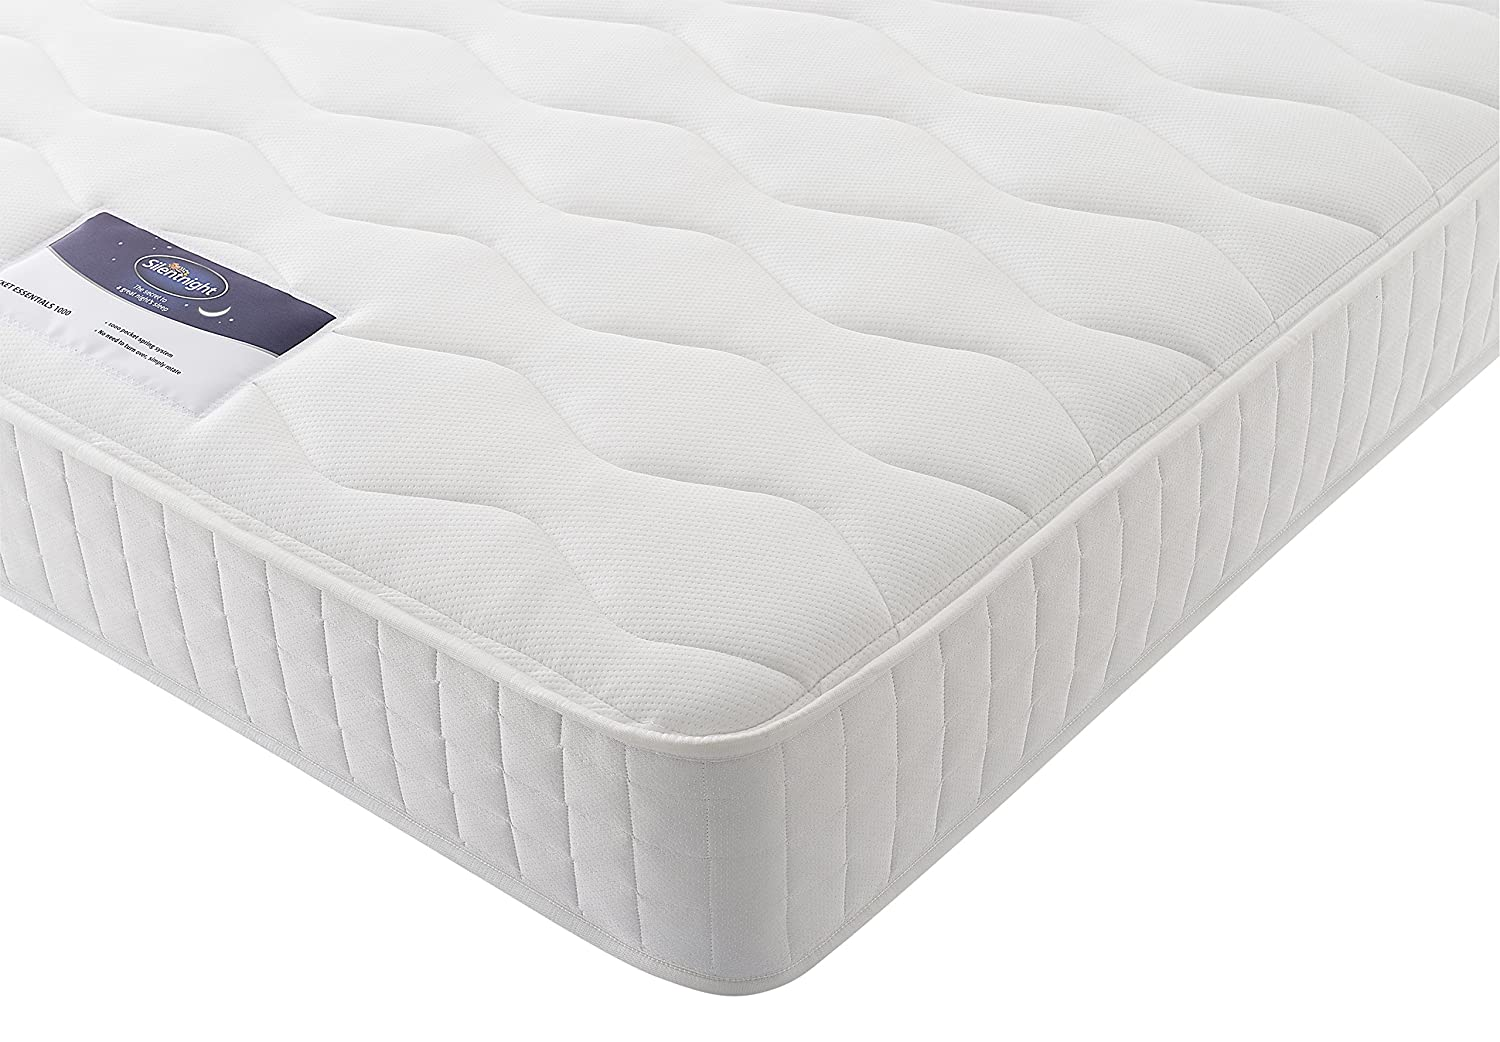 Orthopedic Mattress Argos Buy Silentnight Stroud Memory Small Double 2 Drawer Divan Bed At